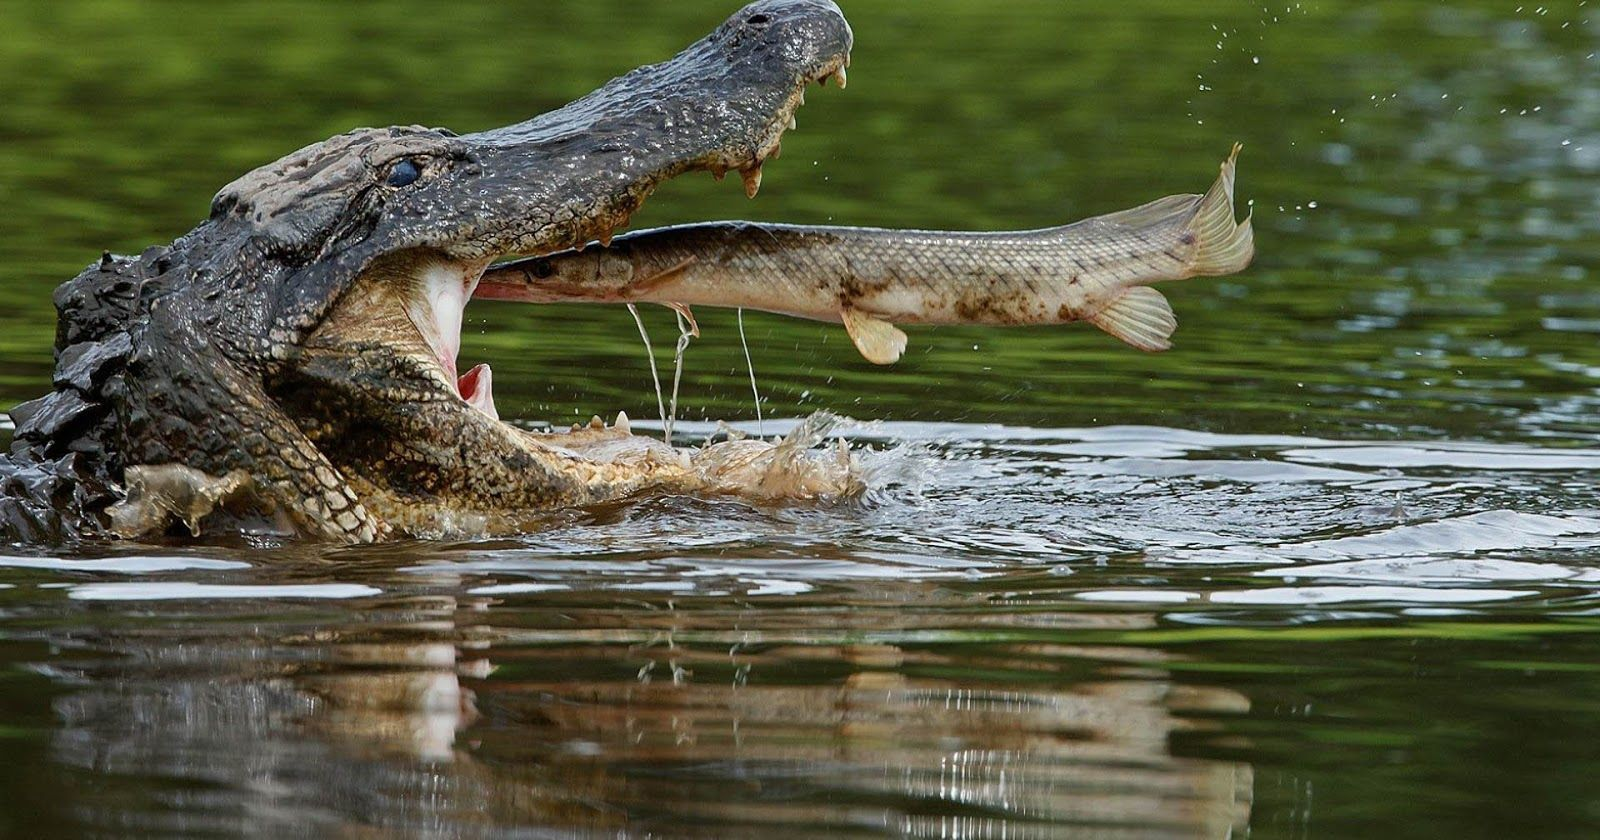 pictures of a crocodile download free